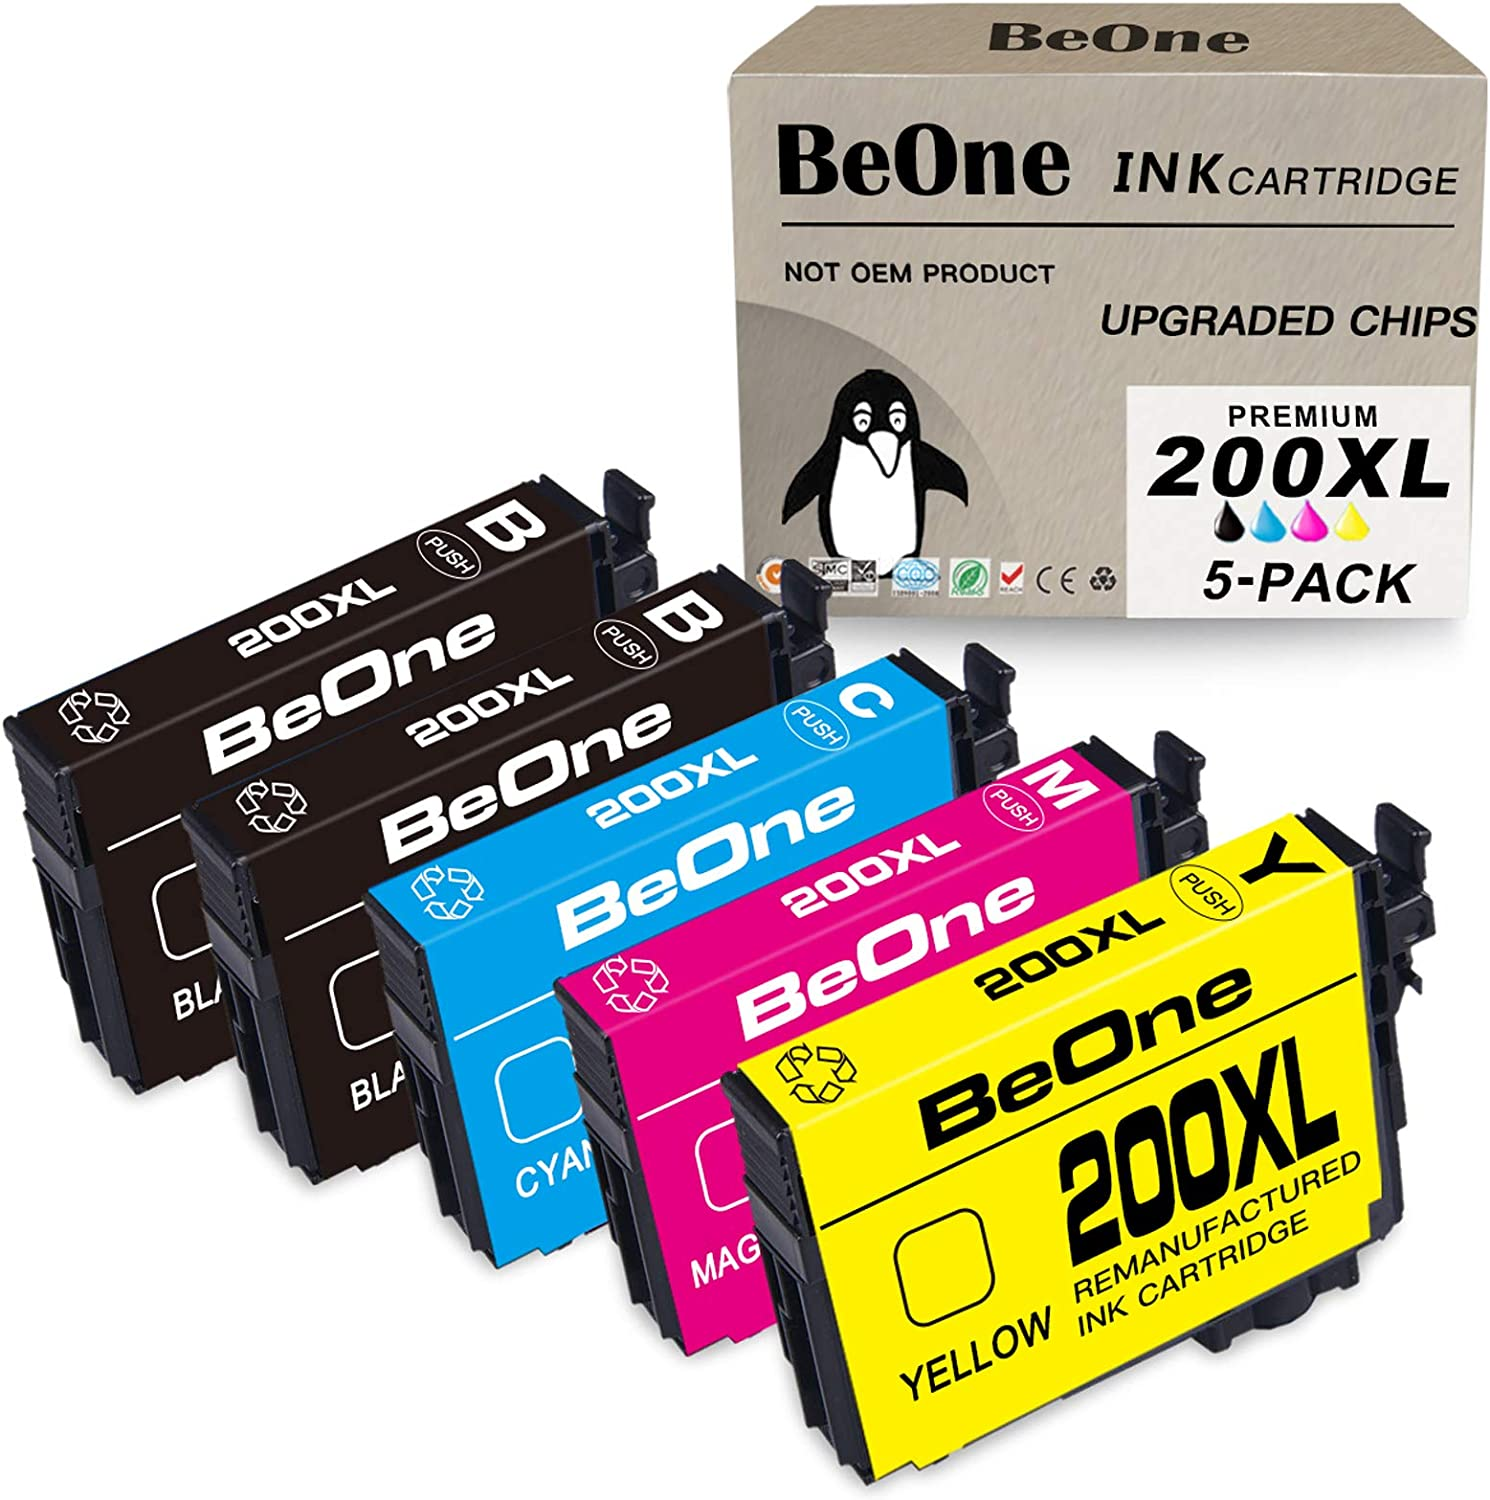 BeOne 200XL 5-Pack Remanufactured Ink Cartridge Replacement for Epson 200 XL T200 T200XL to Use with Expression Home XP-410 XP-400 XP-200 XP-310 XP-300 WorkForce WF-2540 WF-2530 WF-2520 (2BK 1C 1M 1Y)